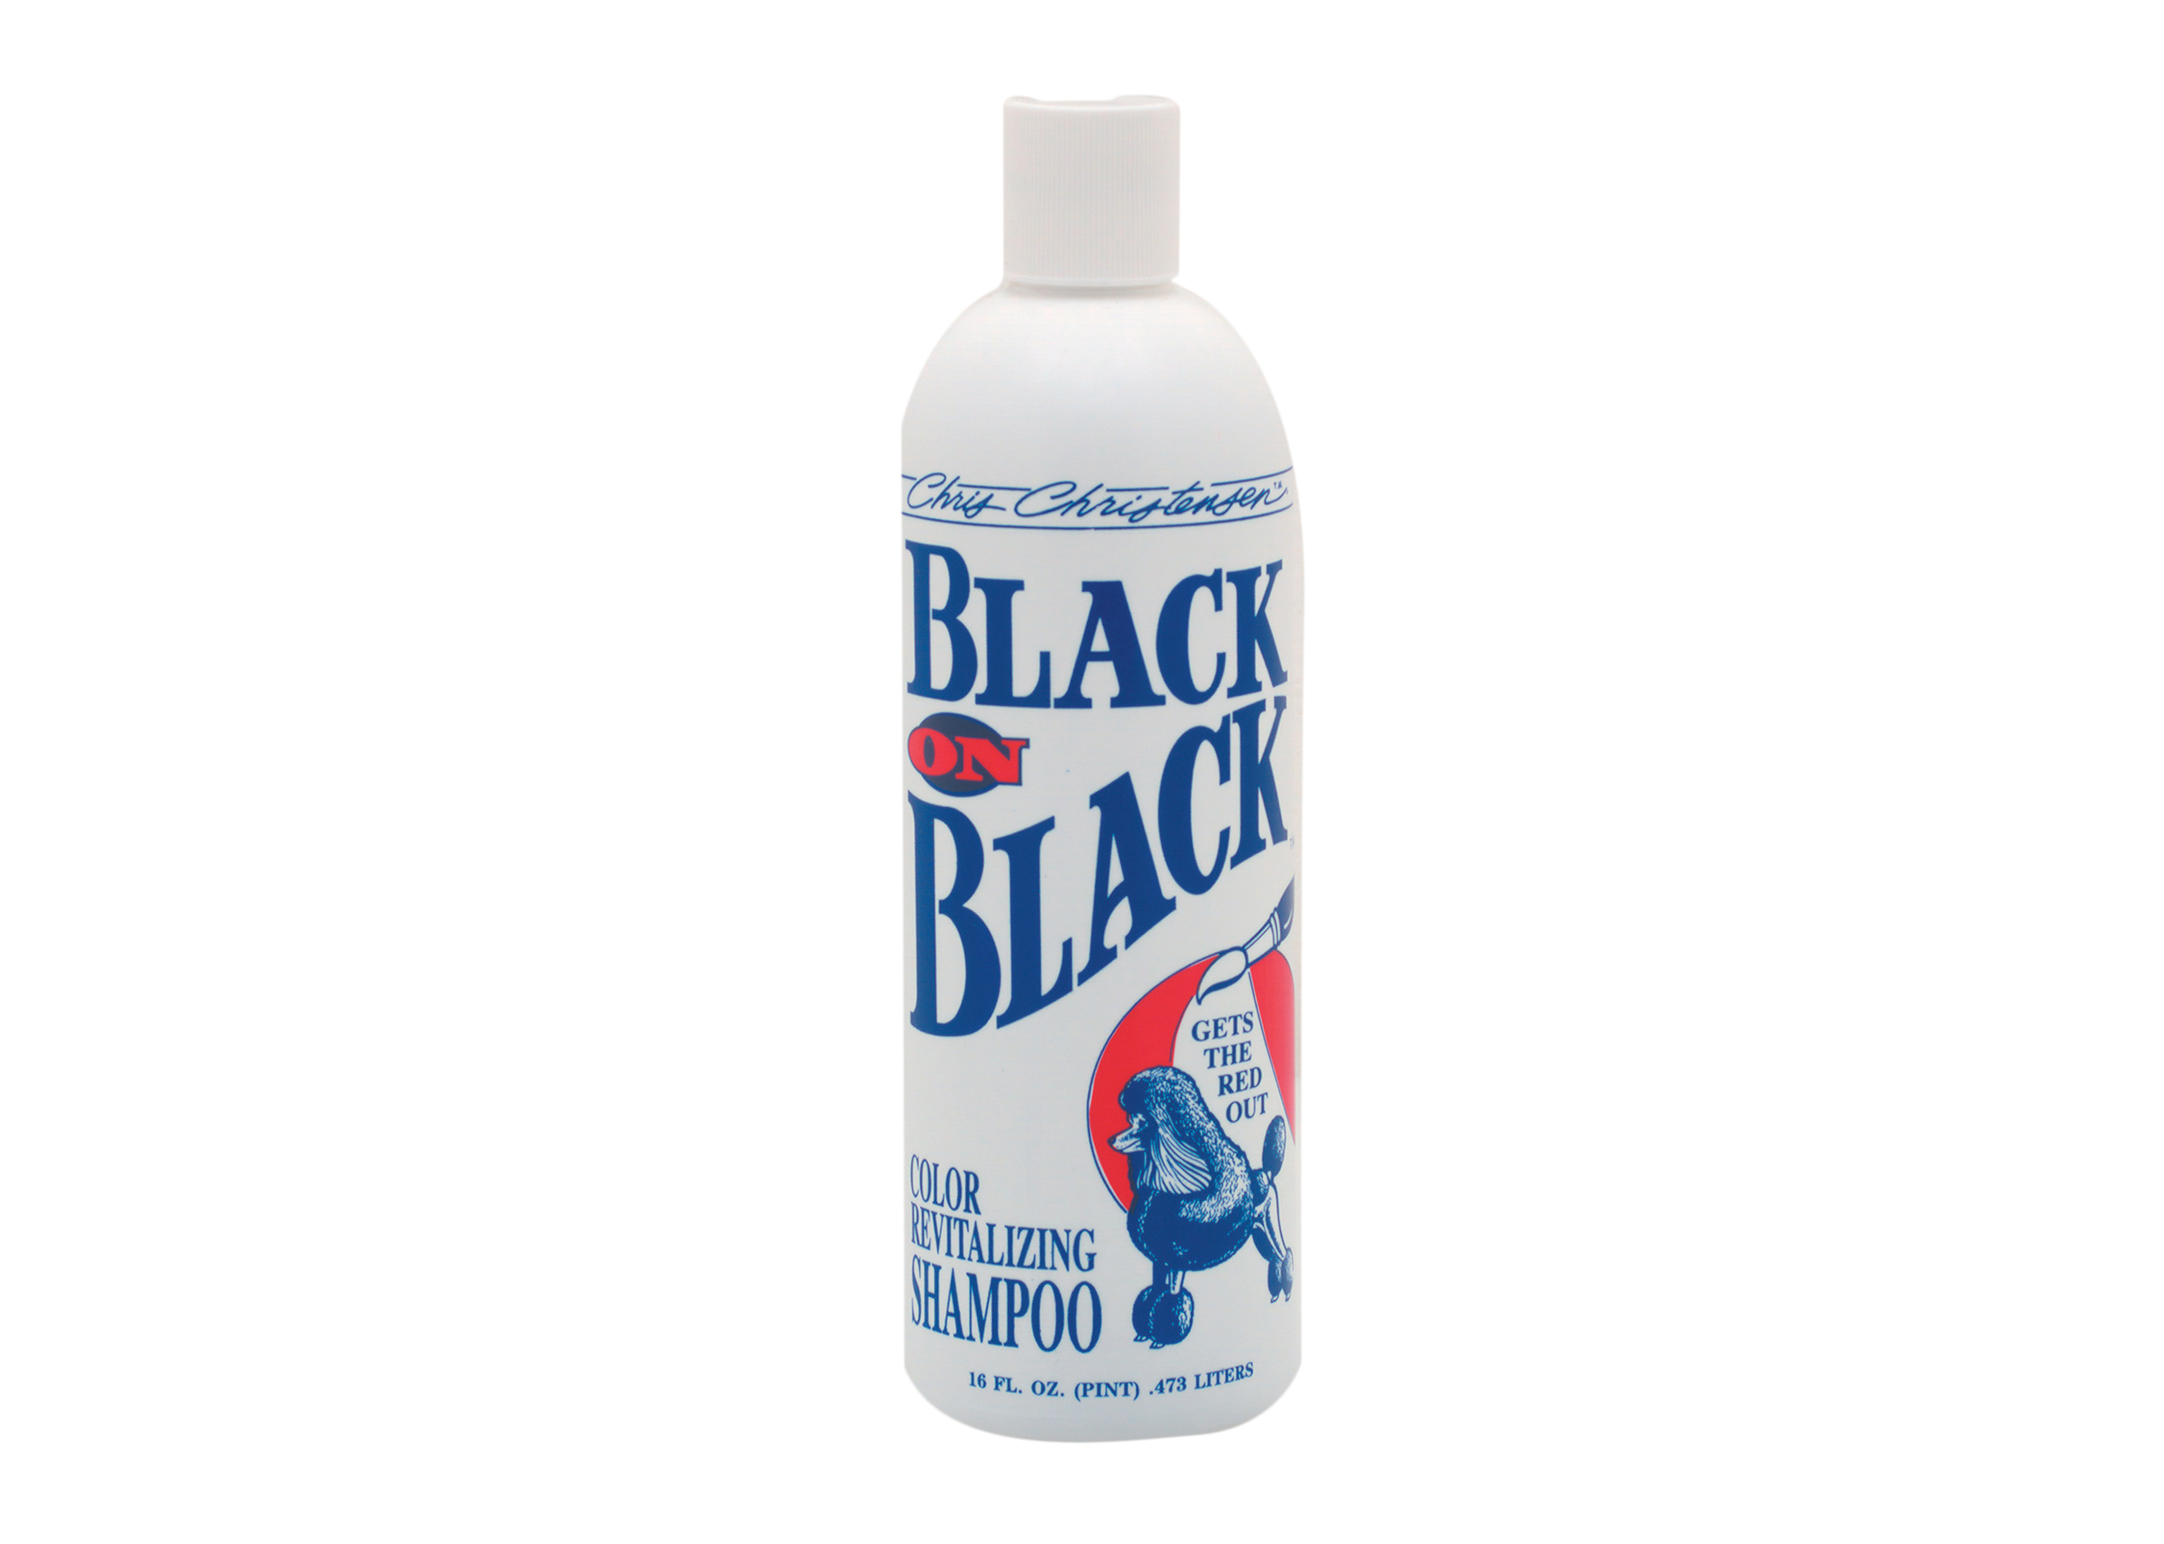 Chris Christensen Systems Black on Black Shampoo For Dogs, Cats And Horses